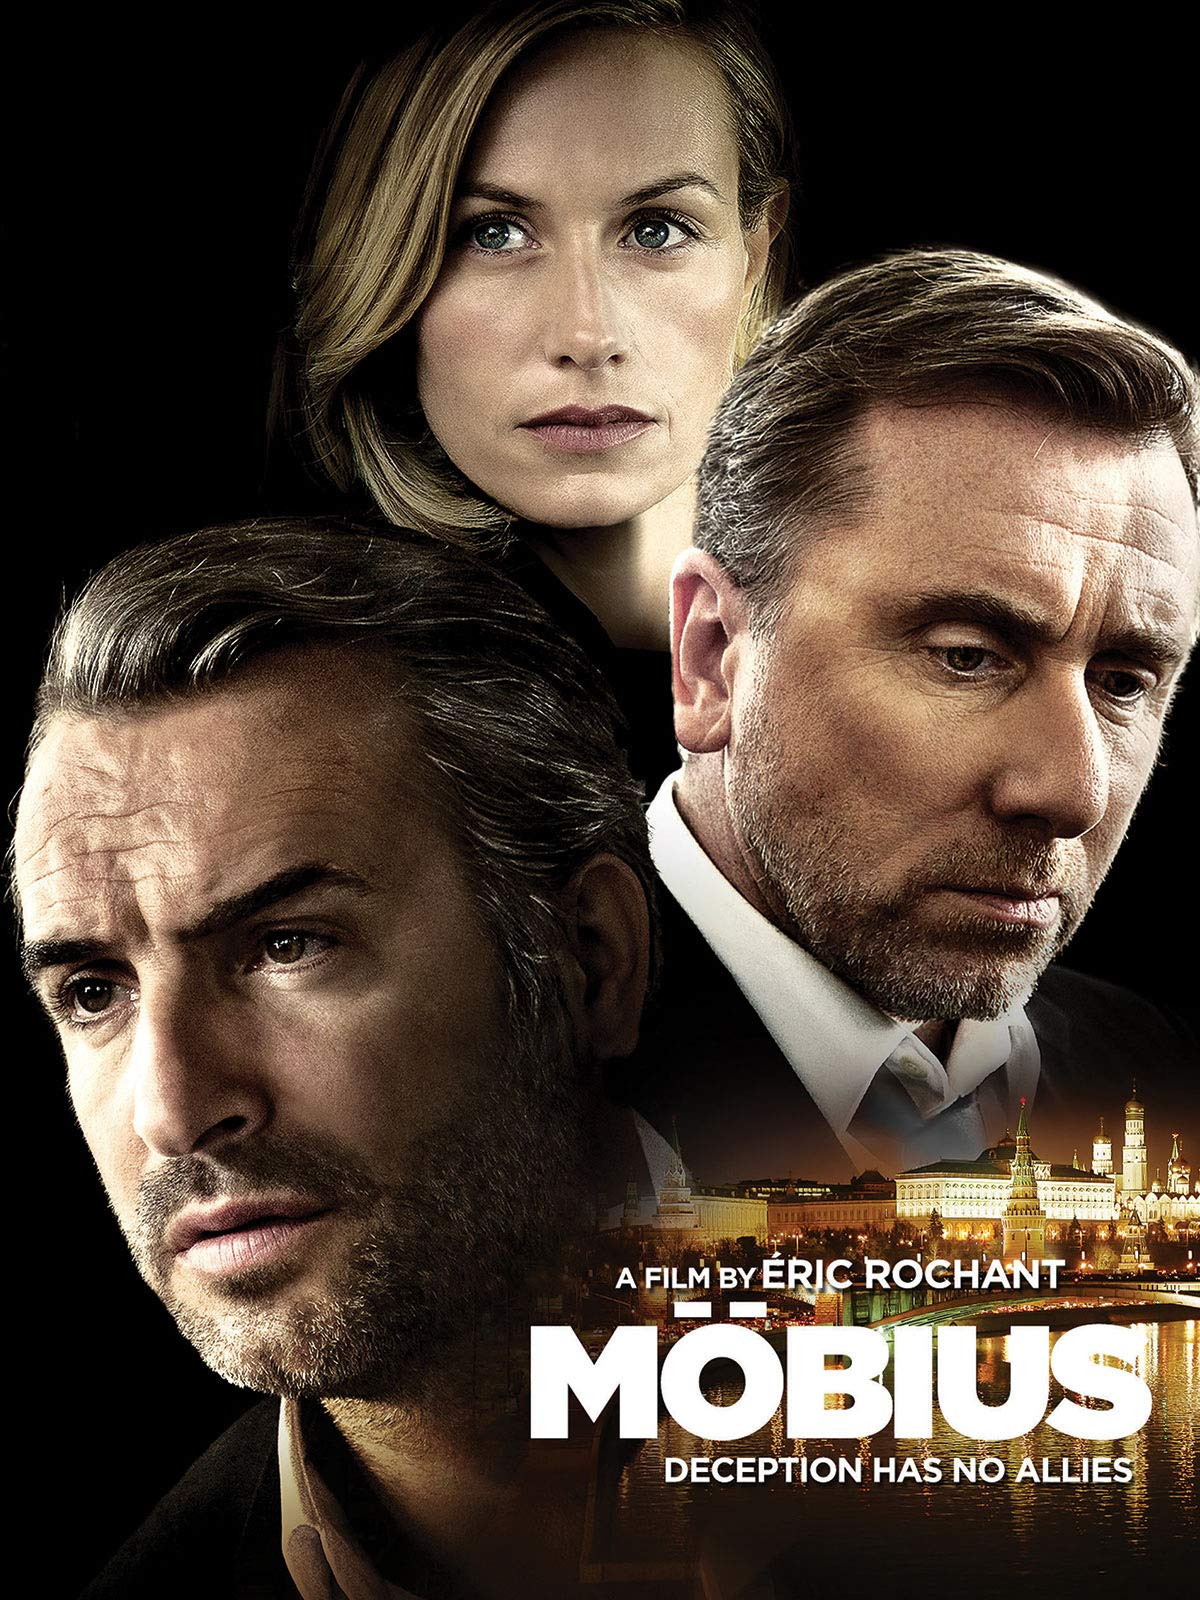 Amazon.com: Watch Möbius